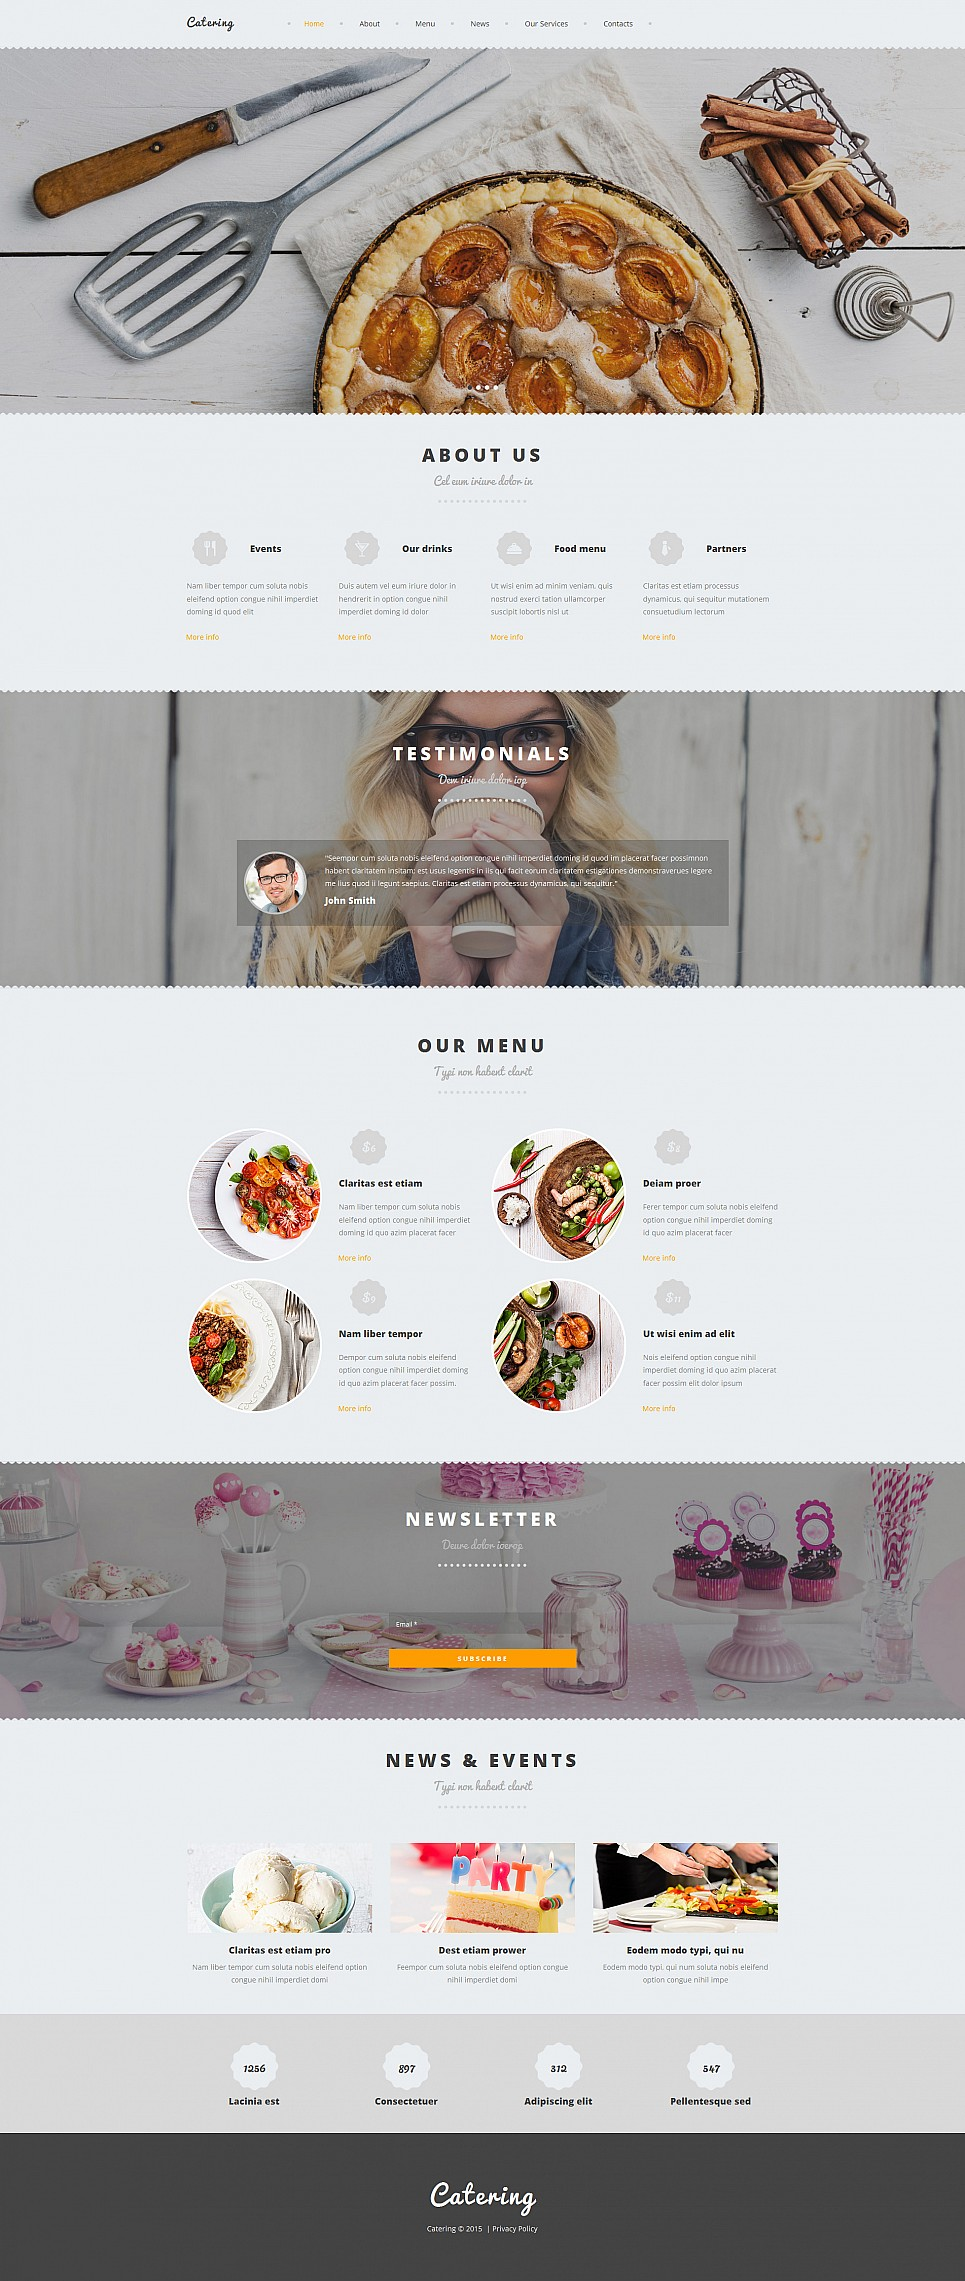 Catering Site Design with CMS - image